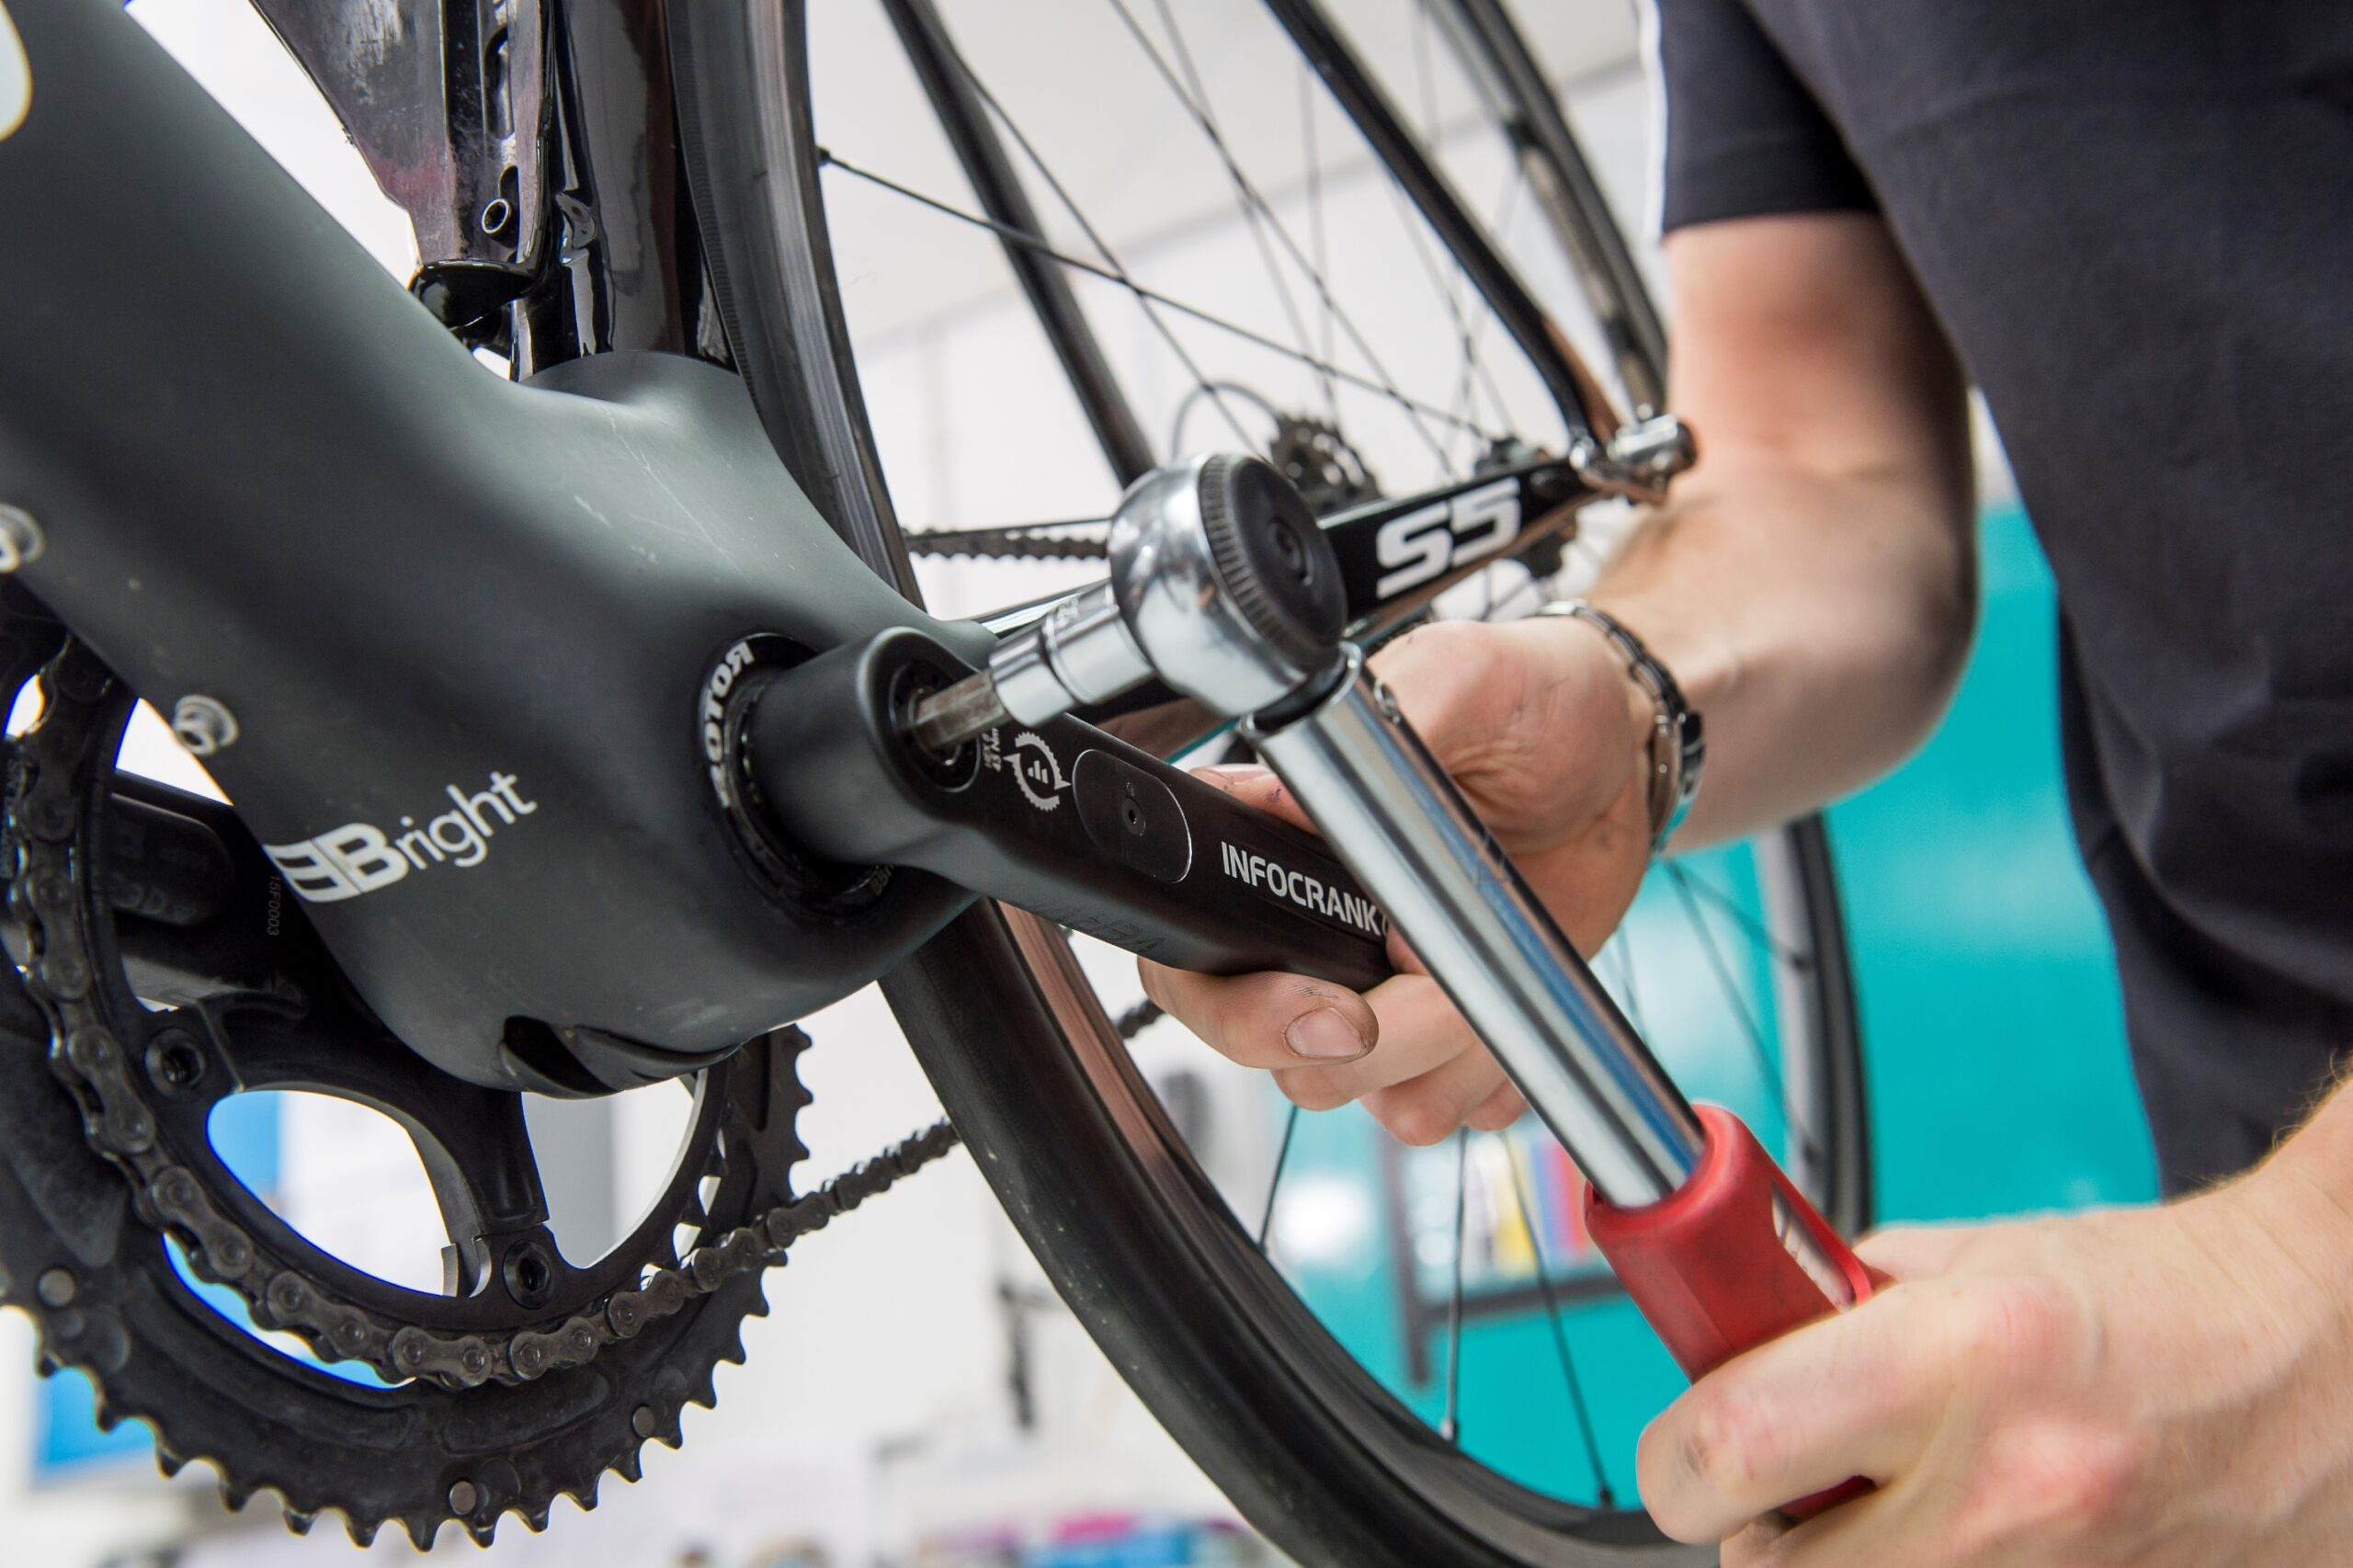 Halo Cycles appointed as UK InfoCrank Sales and Service Centre